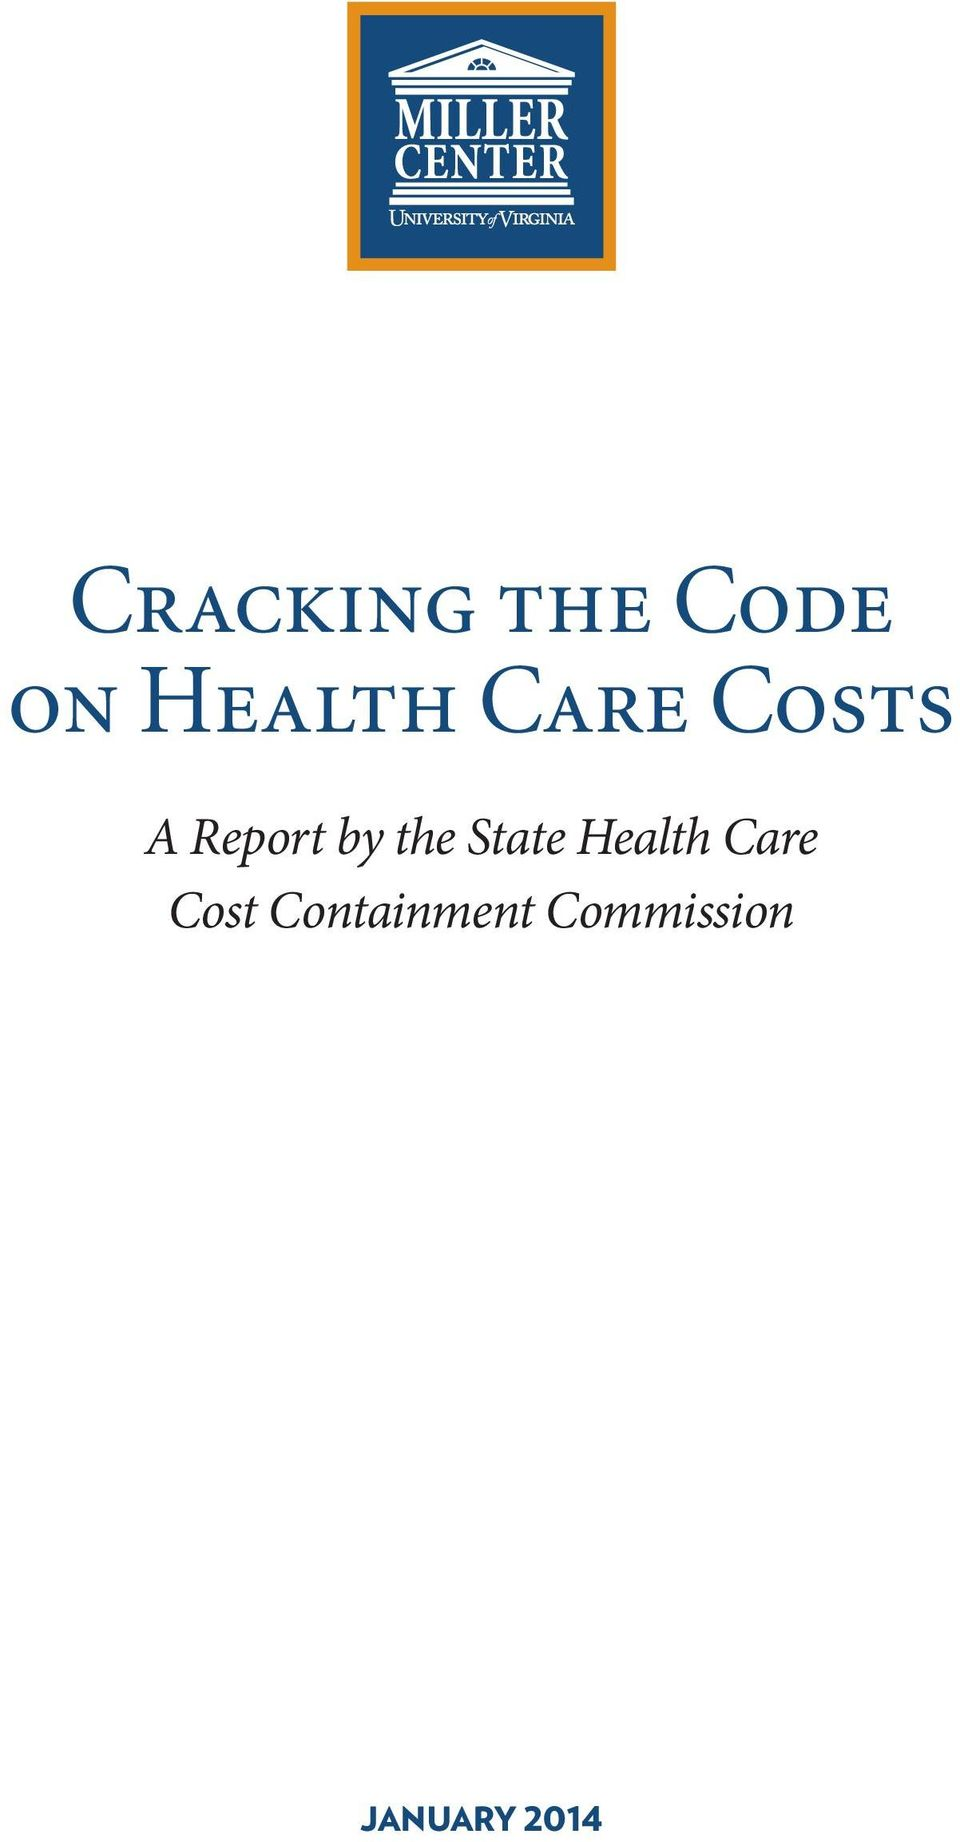 State Health Care Cost